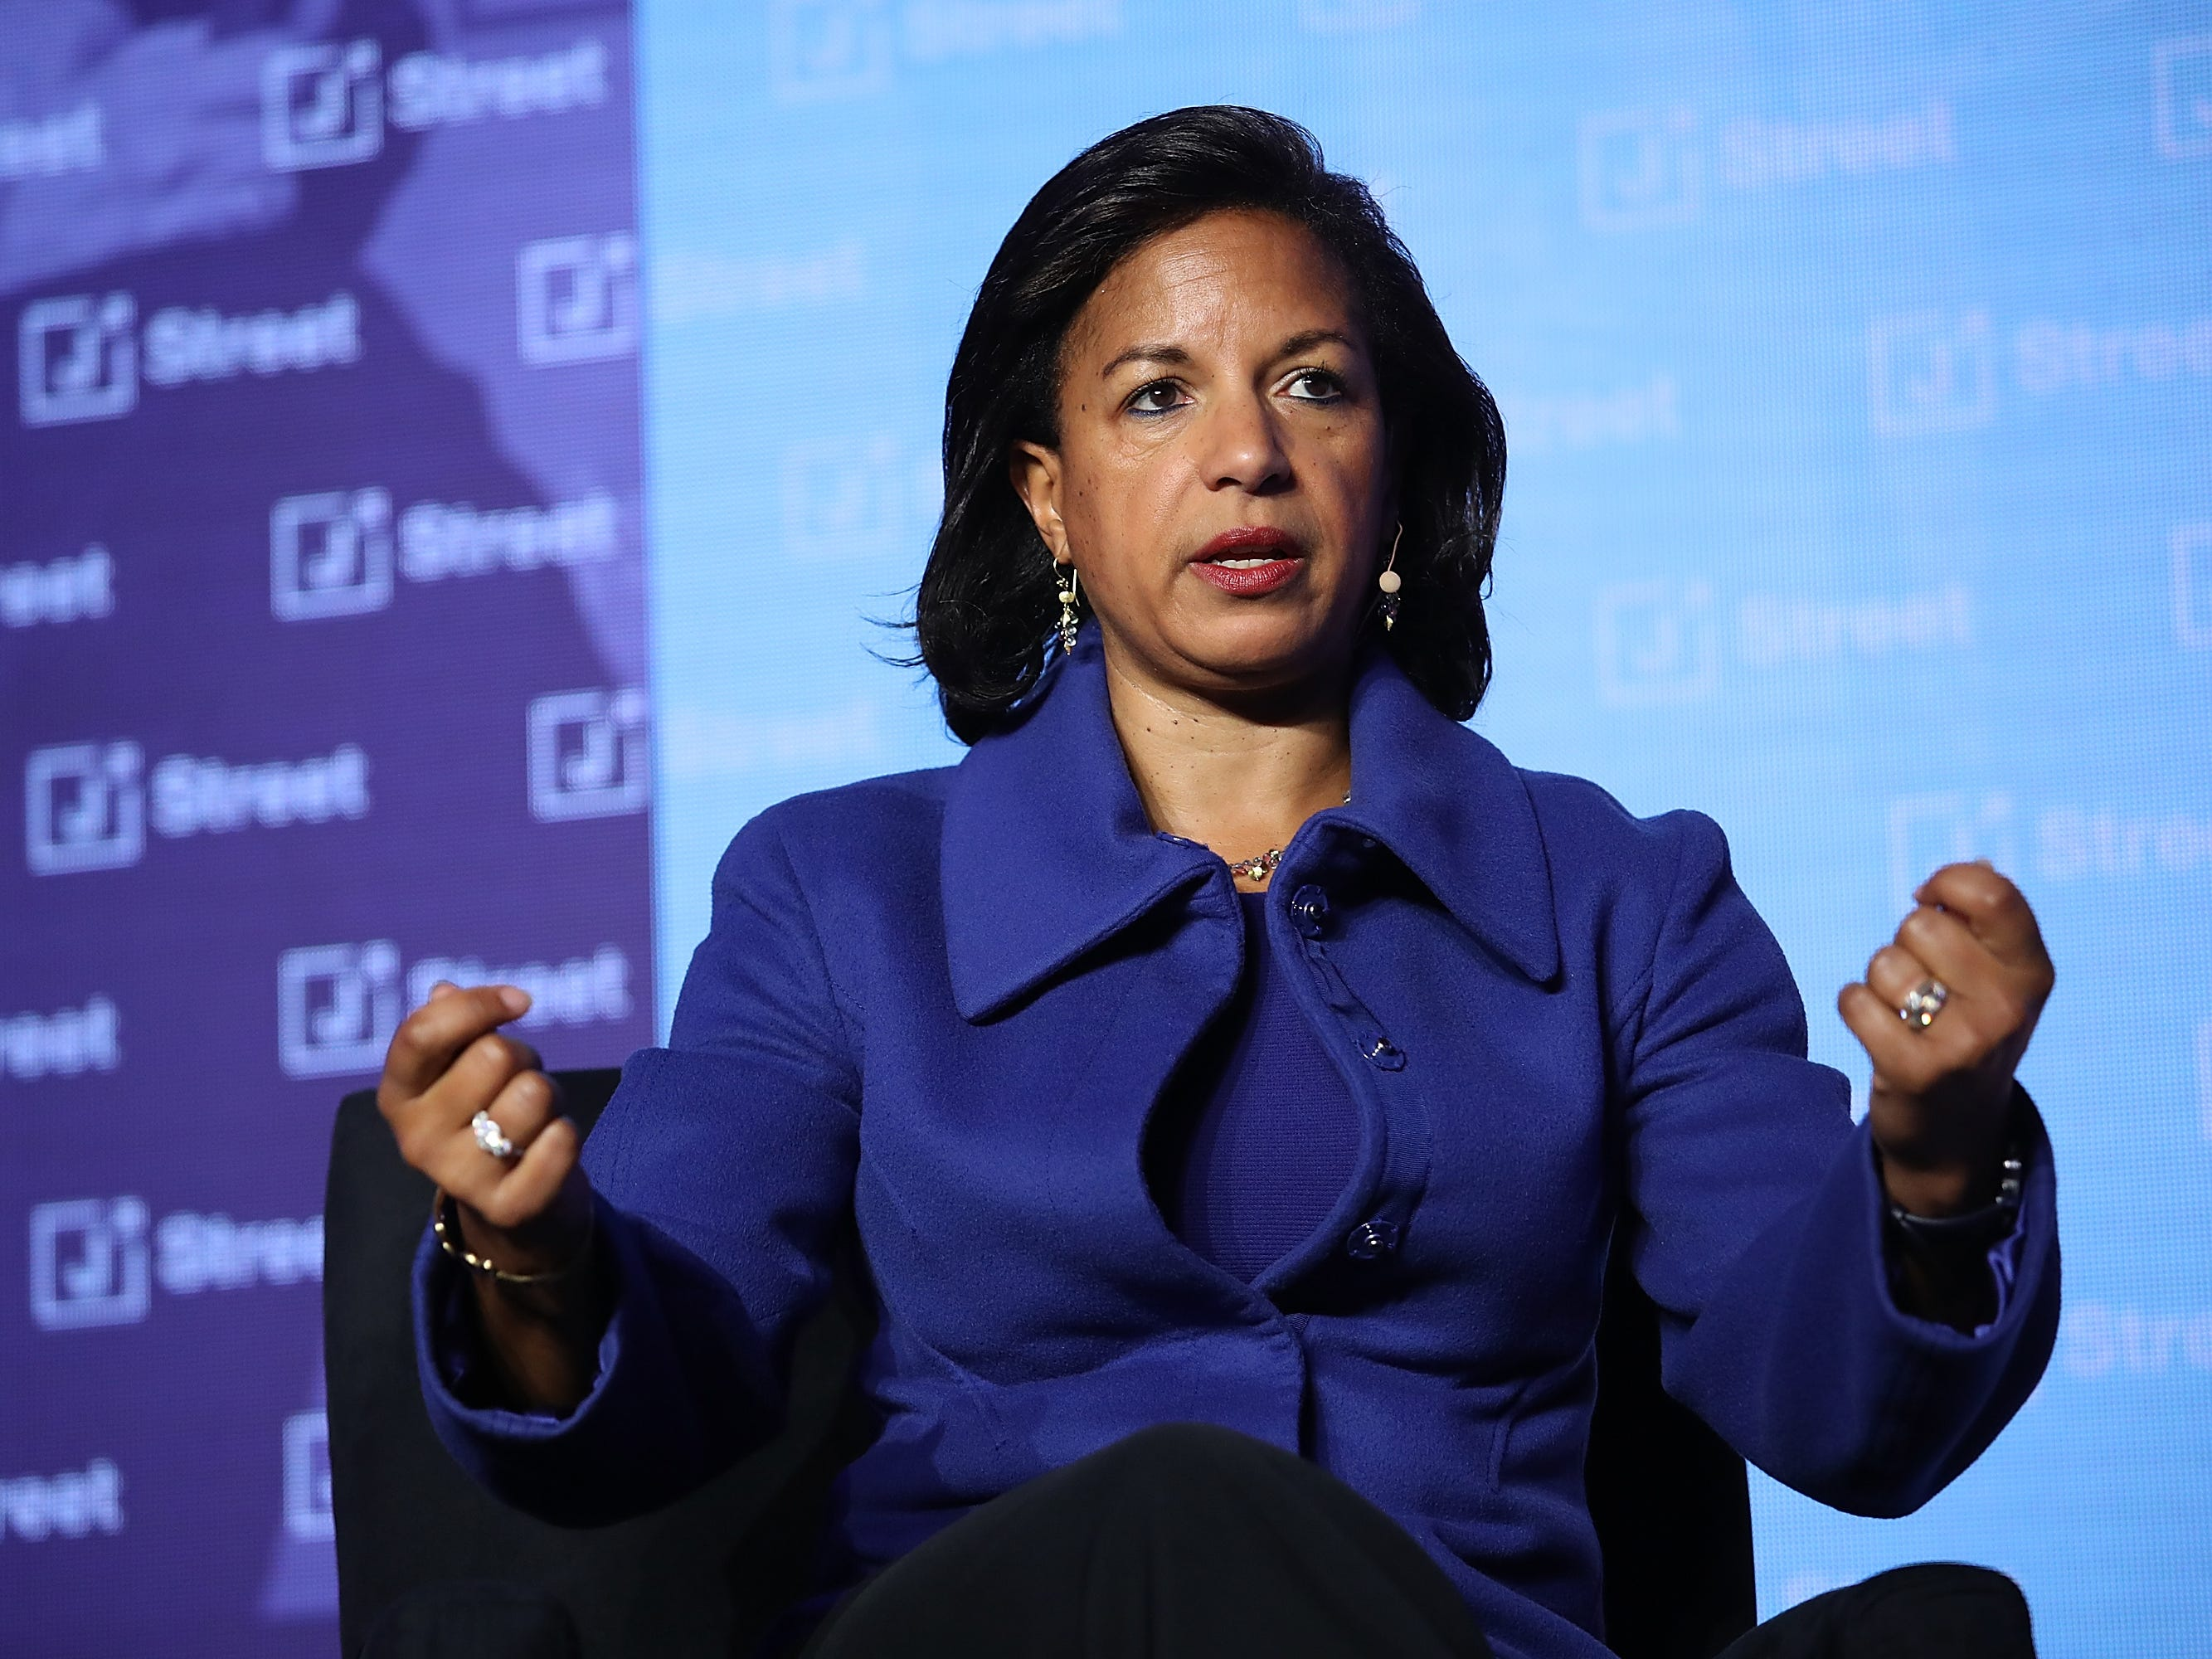 "WASHINGTON, DC - APRIL 16:  Former National Security Advisor Susan Rice speaks at the J Street 2018 National Conference April 16, 2018 in Washington, DC. Rice spoke on the topic of ""The Dangers of U.S. Foreign Policy Under Trump"".  (Photo by Win McNamee/Getty Images) ORG XMIT: 775154119 ORIG FILE ID: 947143588"